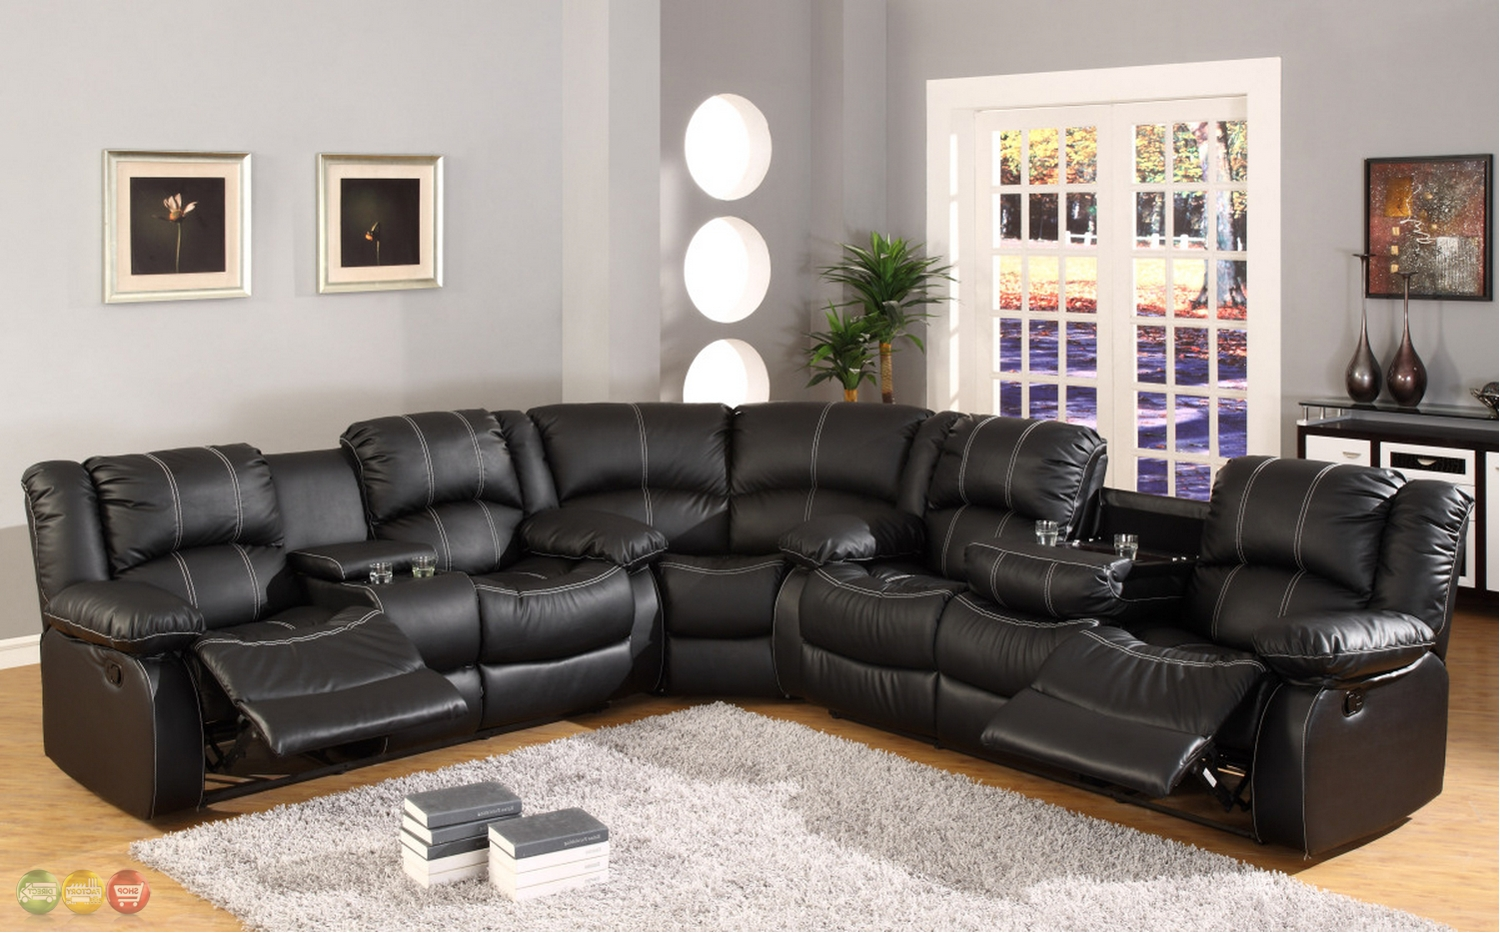 Most Current Faux Leather Sectional Sofas Throughout Black Faux Leather Reclining Motion Sectional Sofa W/ Storage (View 10 of 20)